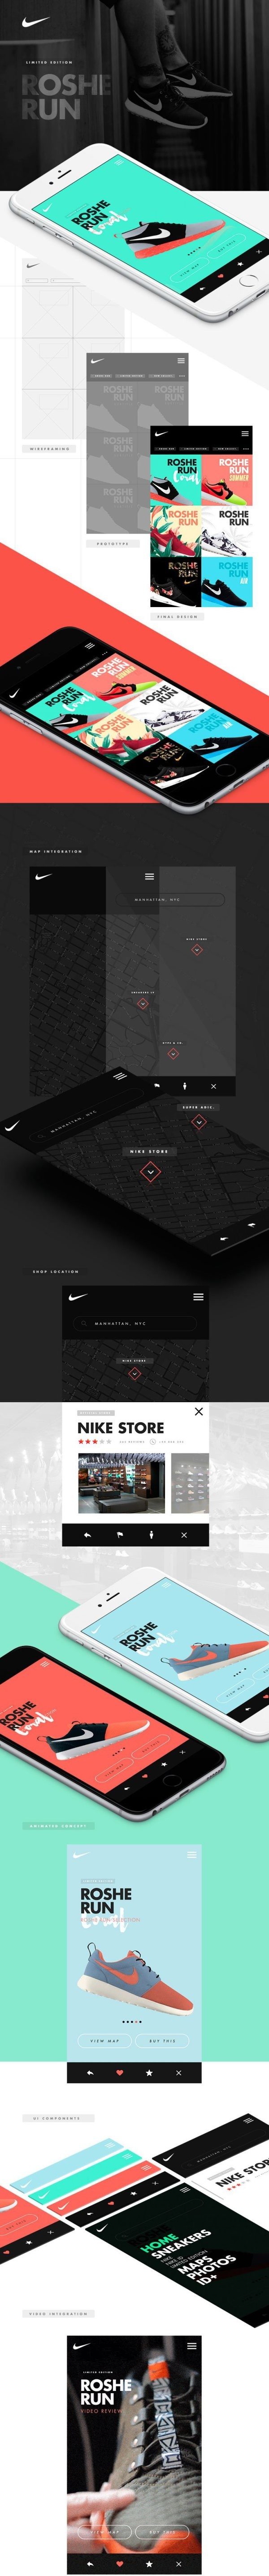 Nike – Roshe Run App by Owi Sixseven